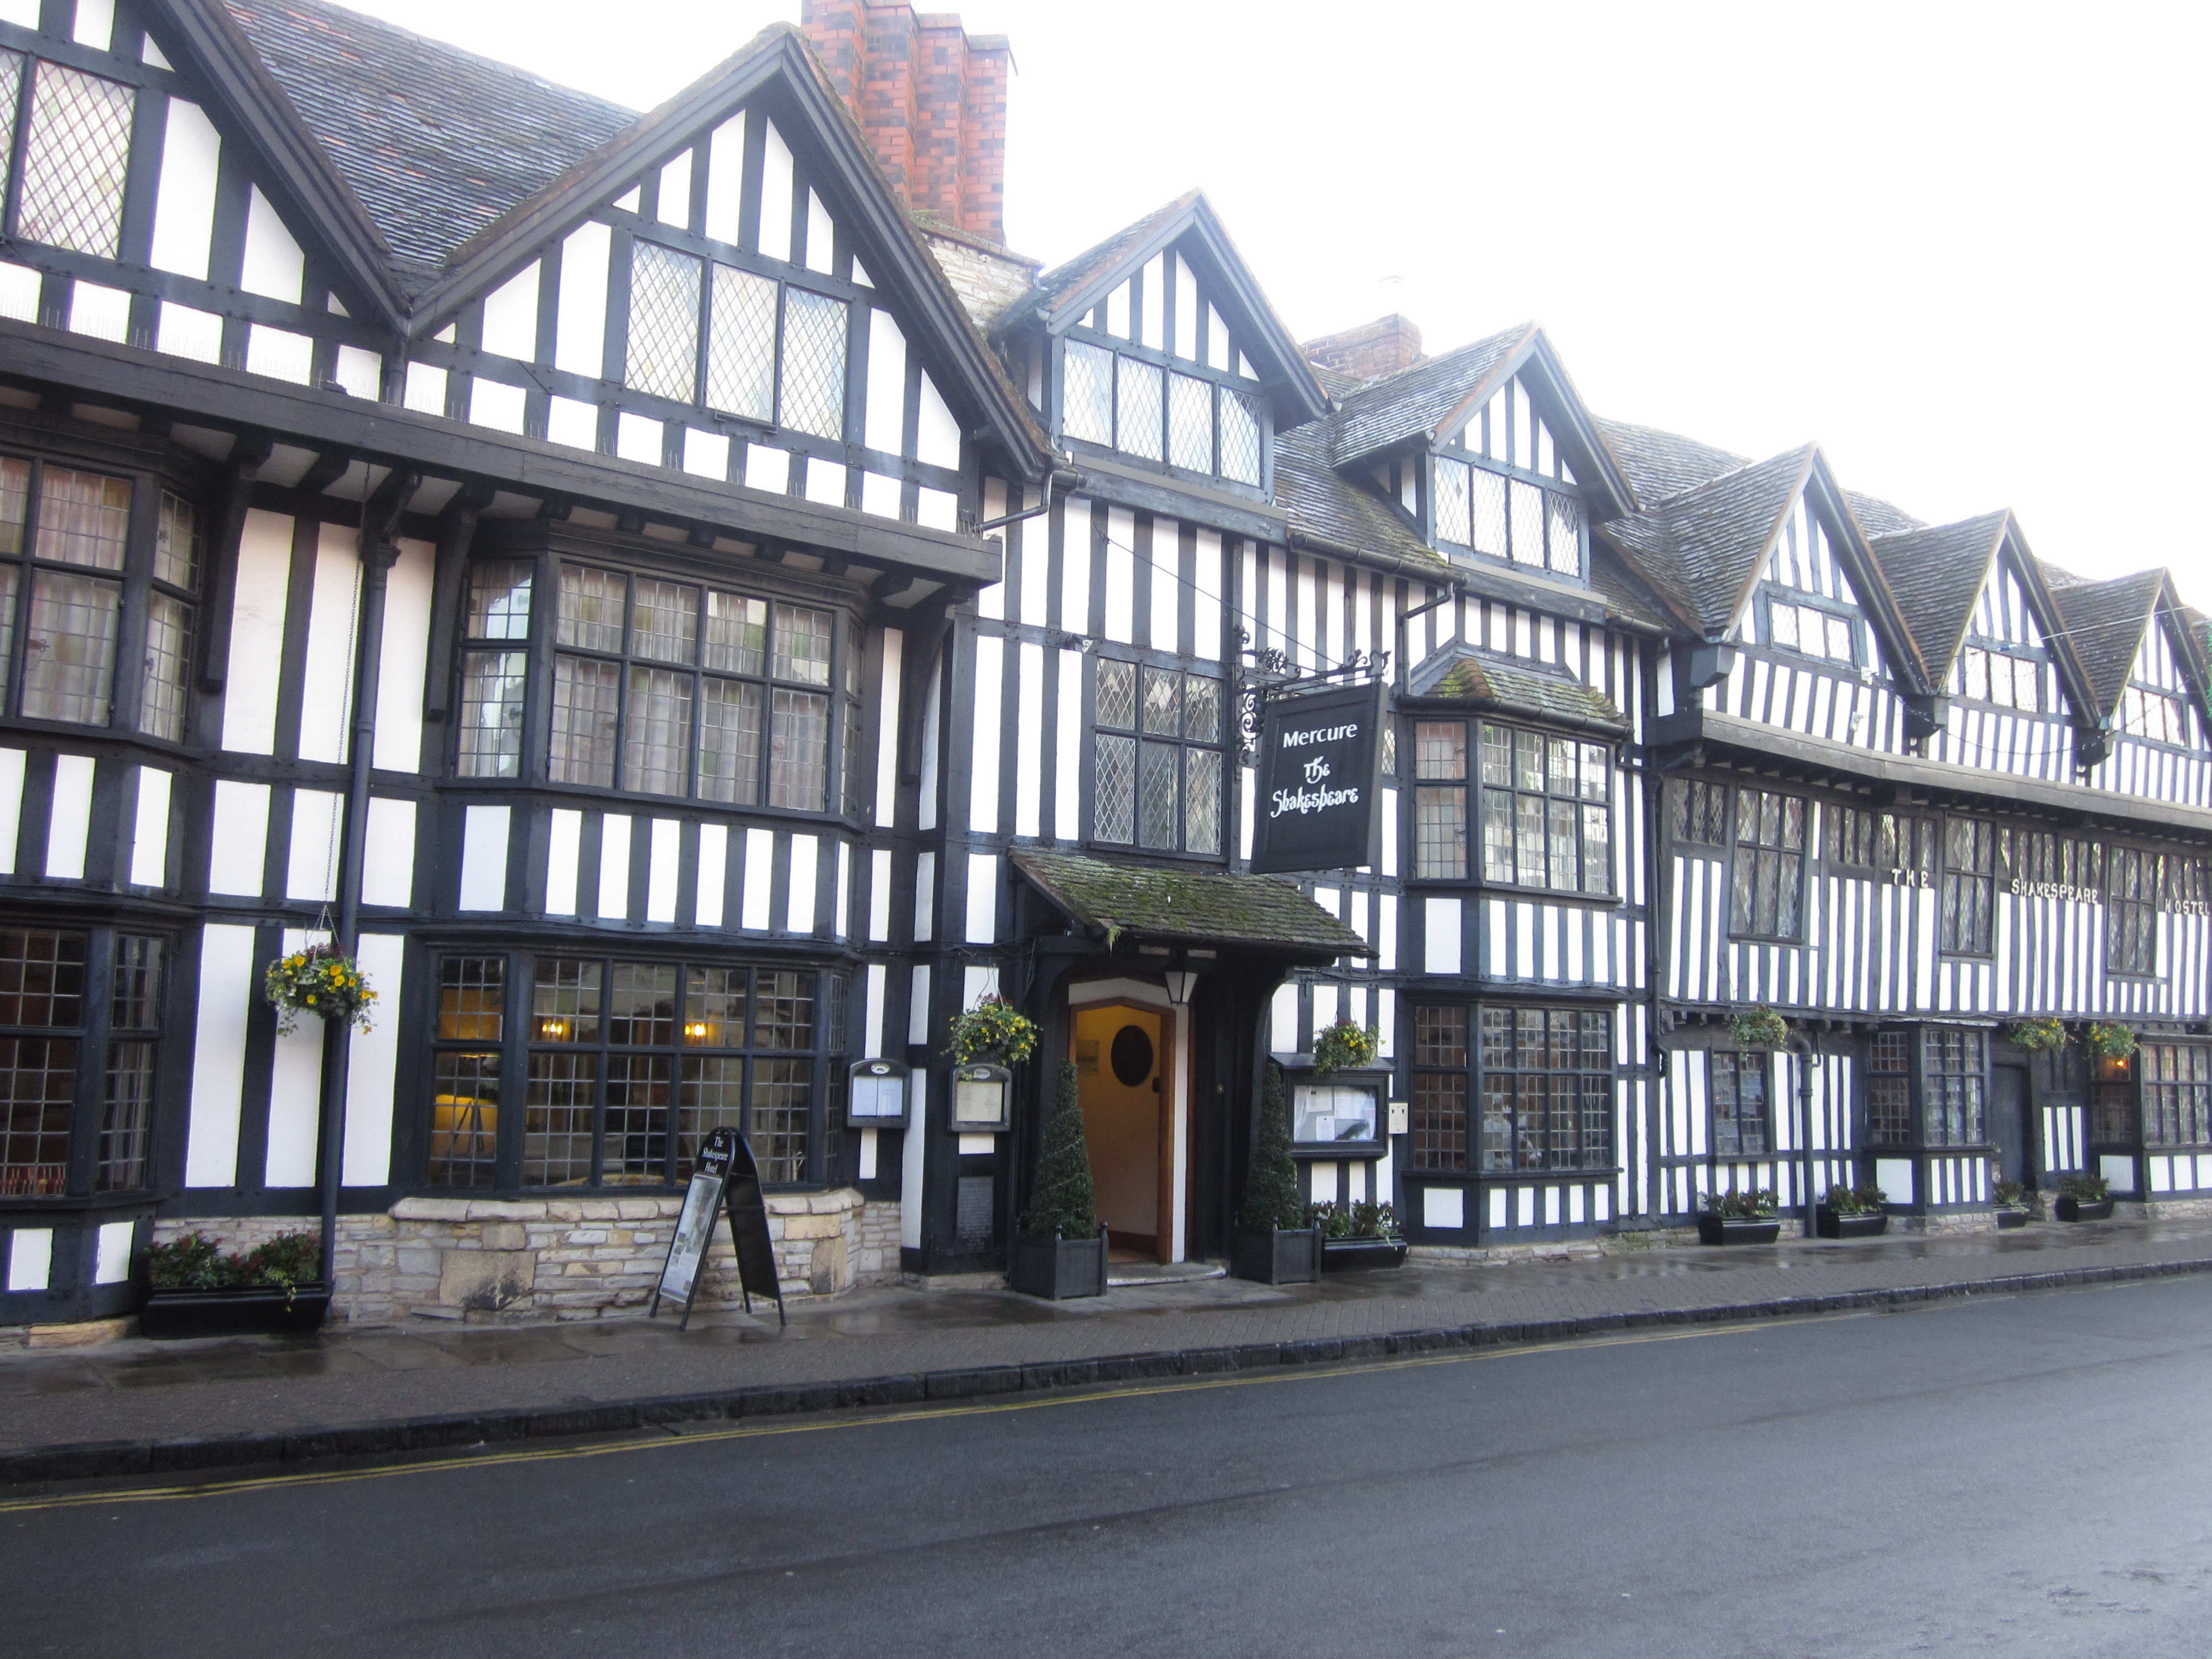 7 things to do in Stratford Upon Avon!